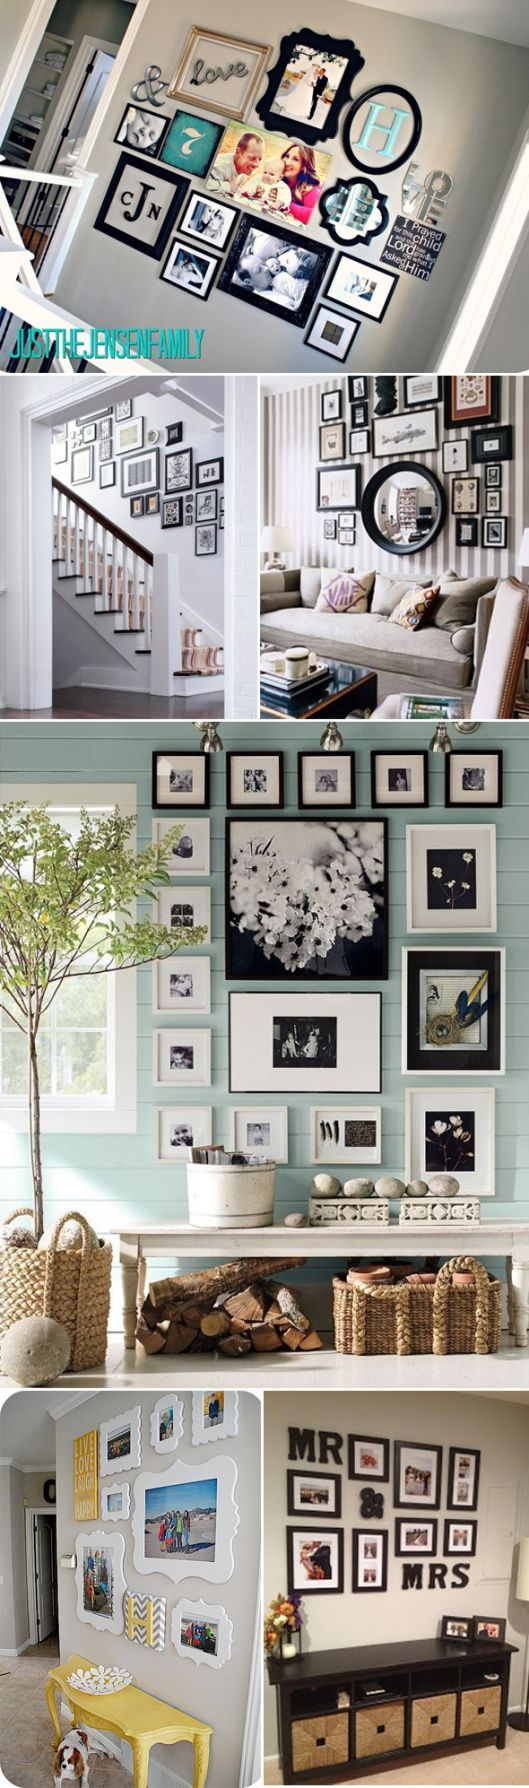 Pictures on the wall - inspirations - especially love the white scallop frames- this is what I'm attempting to create over my couch!